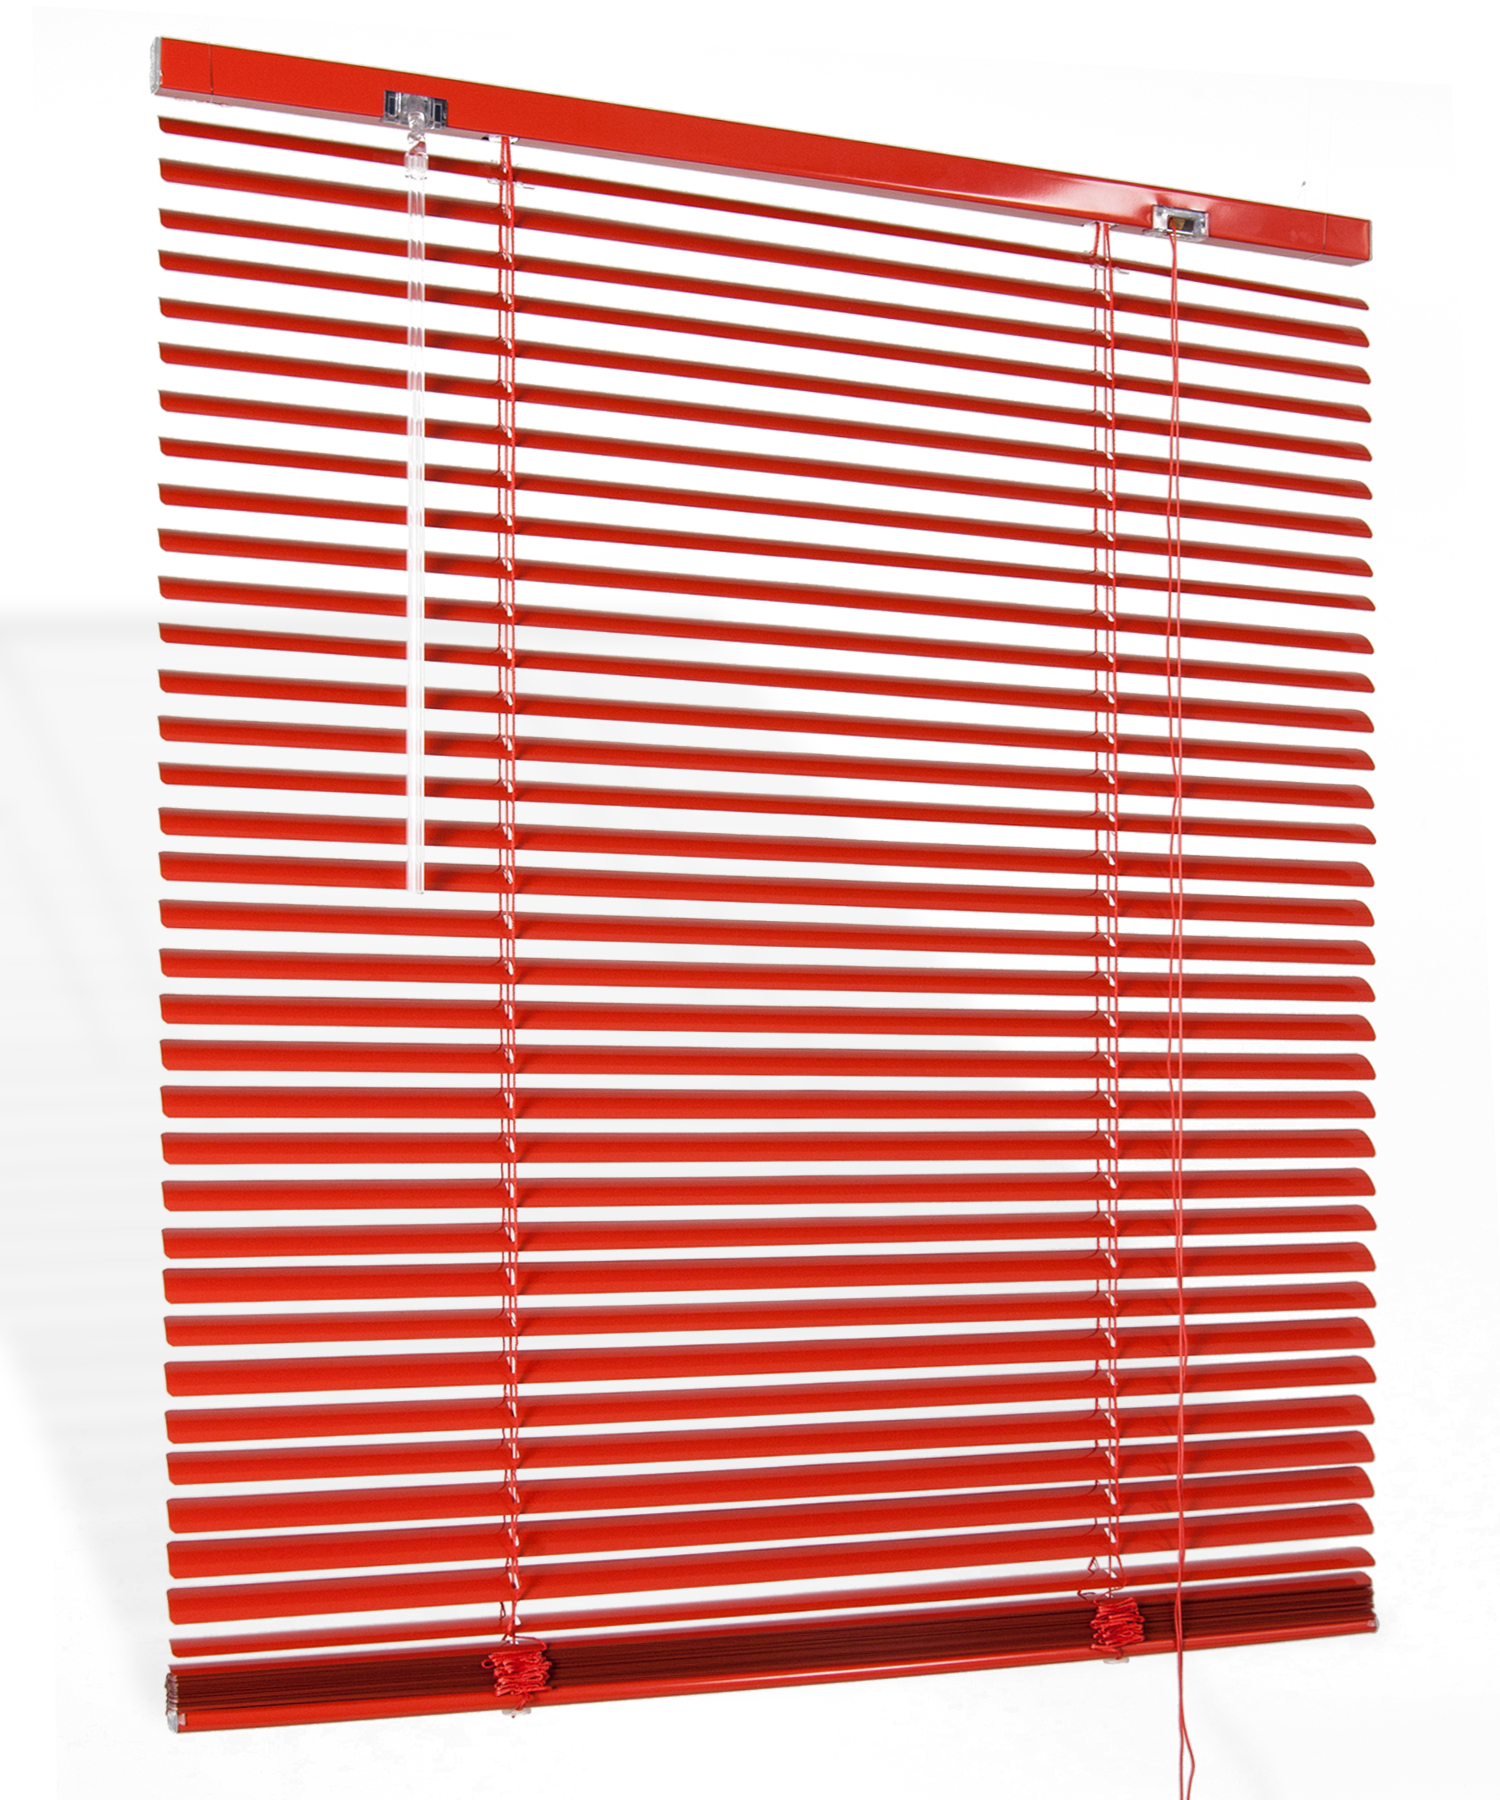 alu aluminium jalousie rollo klemmfix schalusie jalousien klemmfix rot 207 ebay. Black Bedroom Furniture Sets. Home Design Ideas